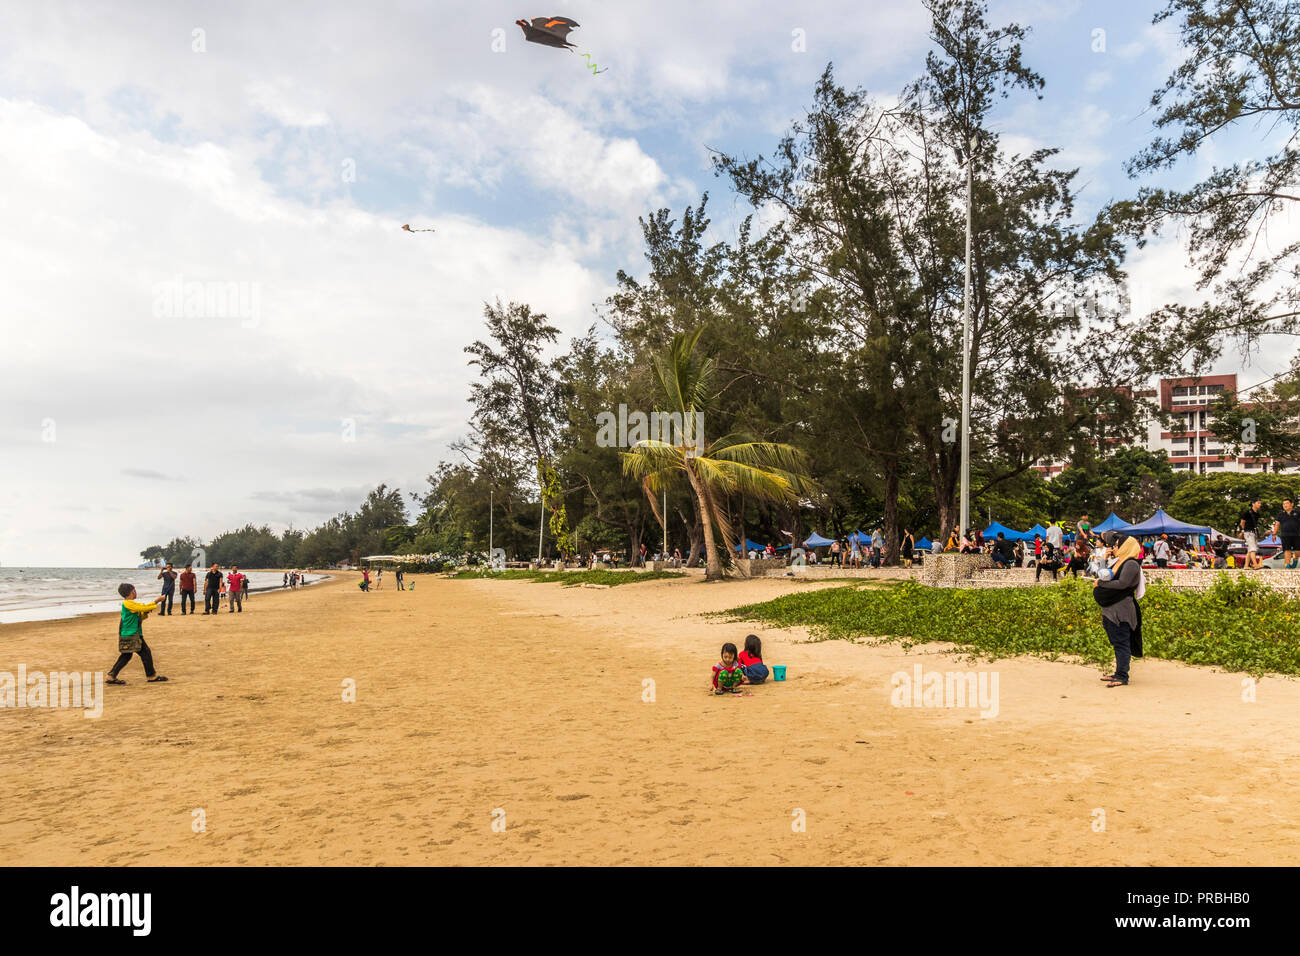 Visitors and tourist enjoying a day on Tanjung Aru Beach Kota Kinabalu Sabah Malaysia Borneo - Stock Image